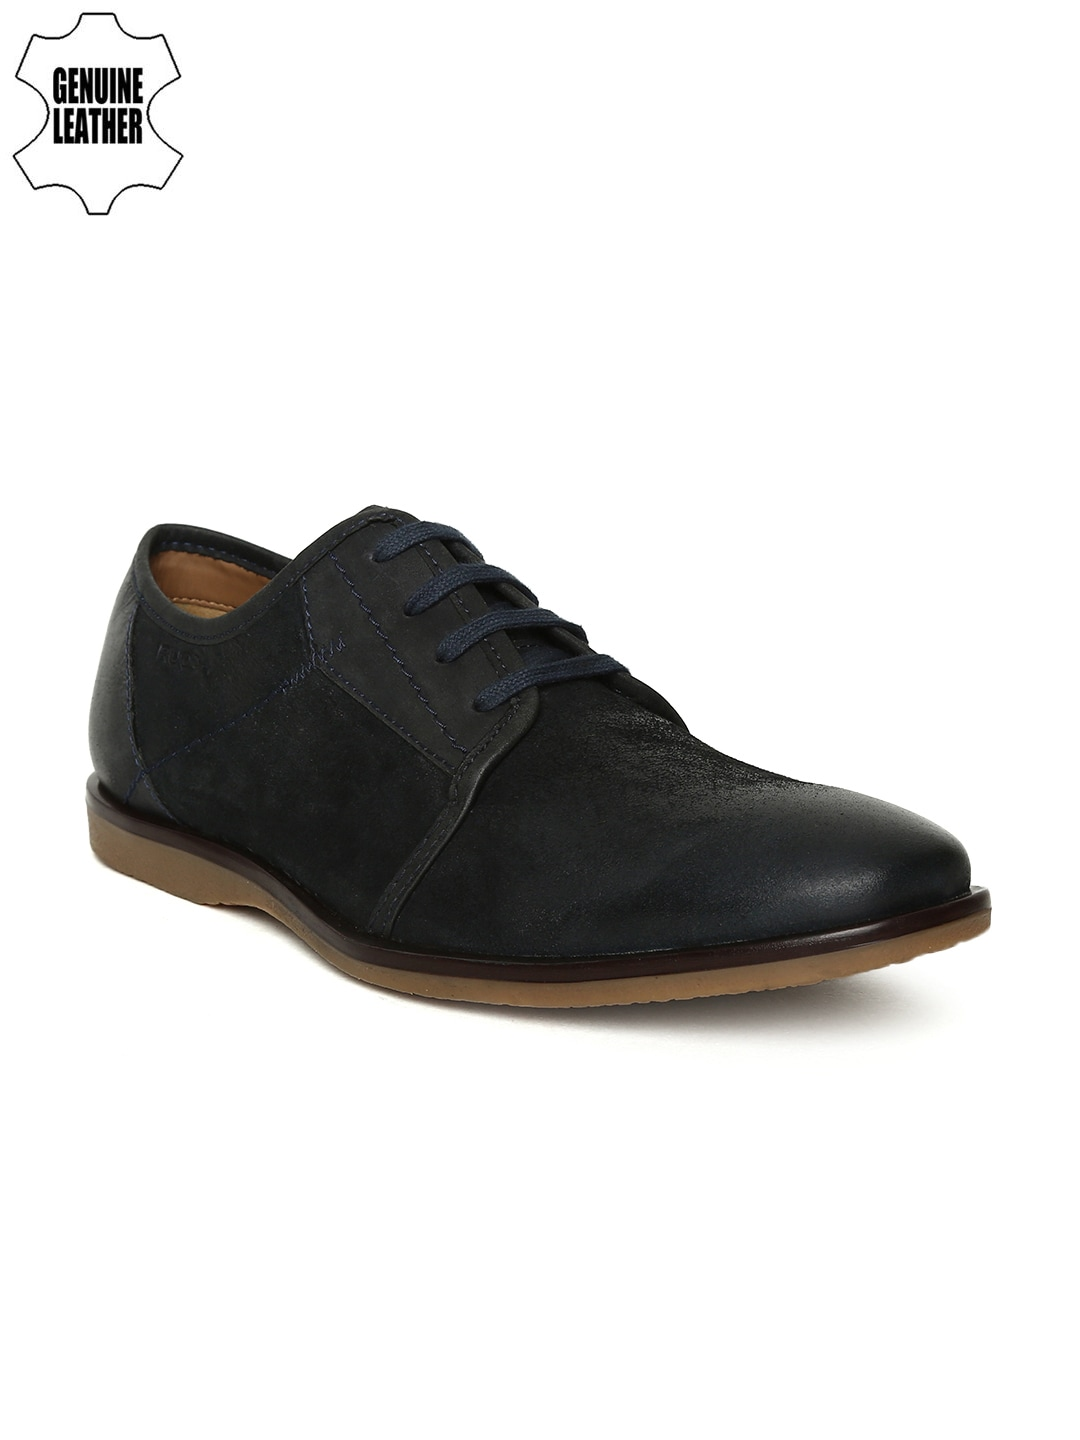 442681463b78 Ruosh Store - Buy Ruosh Footwear   Accessories Online in India